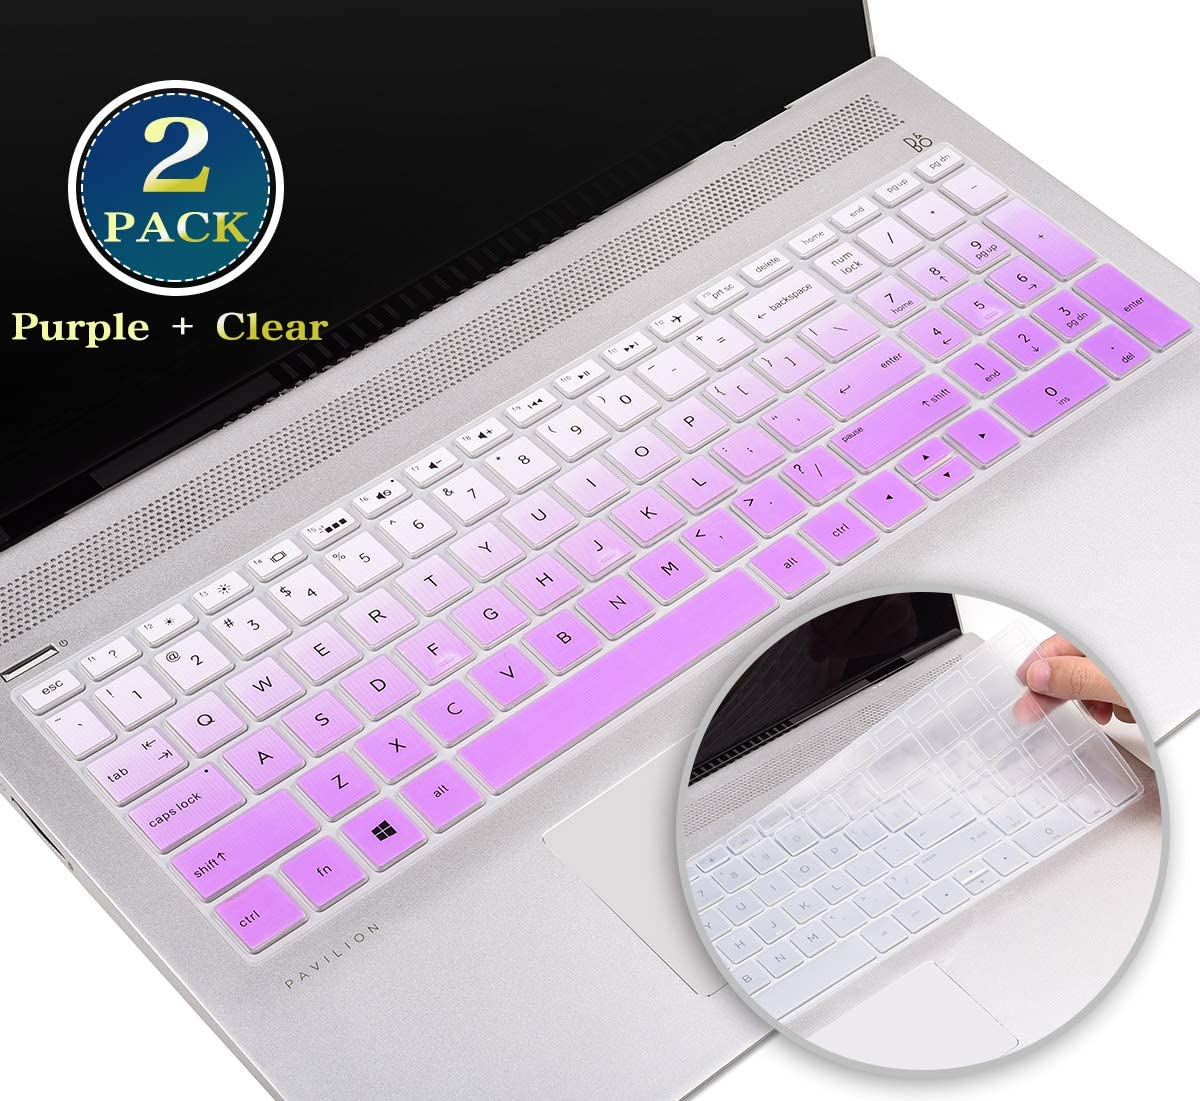 HP Envy 15.6 Keyboard Cover for HP Envy 17t 15t Series, HP Pavilion 15.6/HP Pavilion x360 15.6 Inch Series 2020 2019 2018, HP Spectre x360 15-ch Silicone Keyboard Skin(Gradual Purple+Clear)